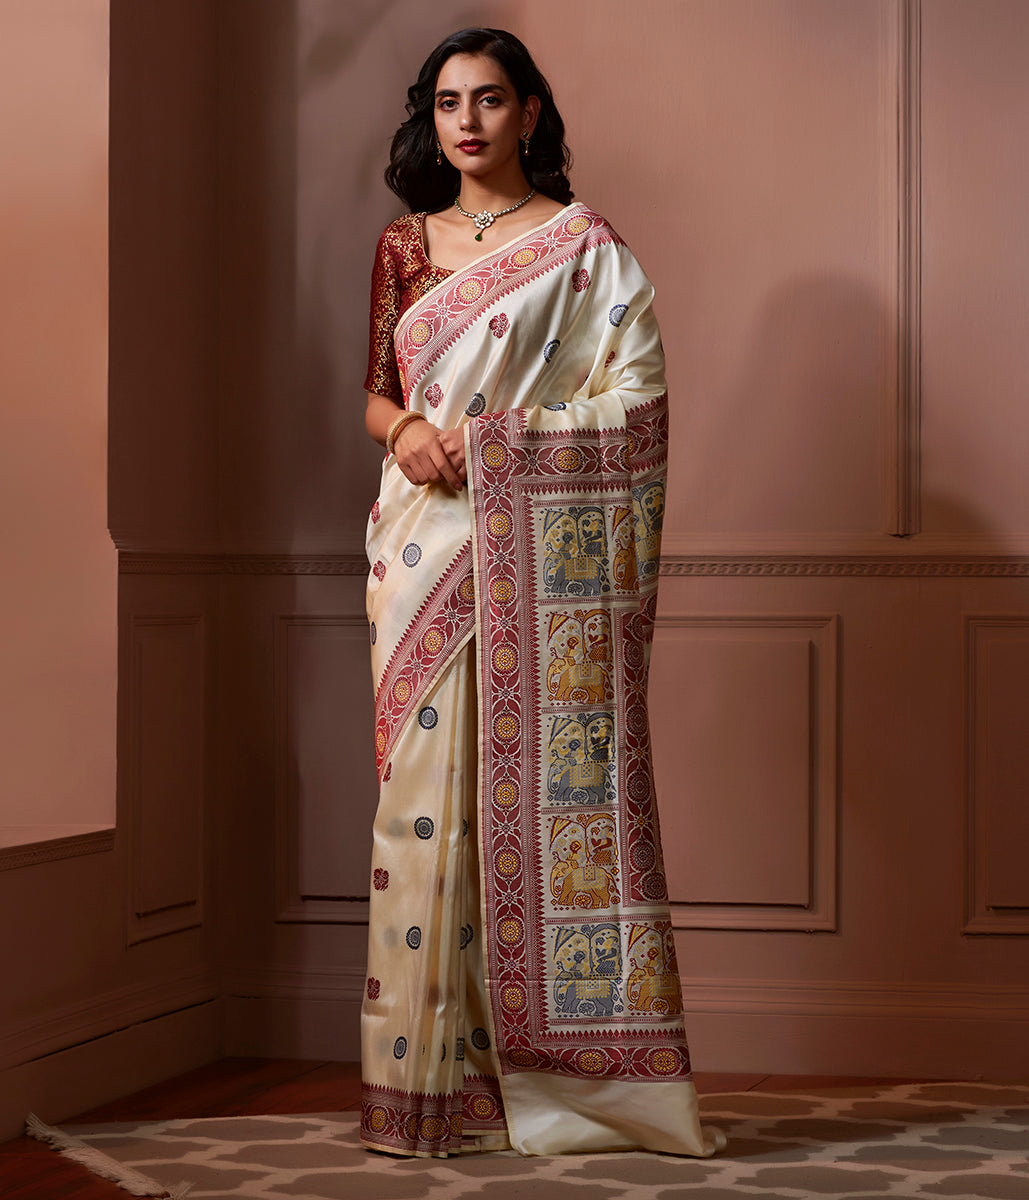 Banaras Baluchari saree in Offwhite with an elaborate elephant pallu